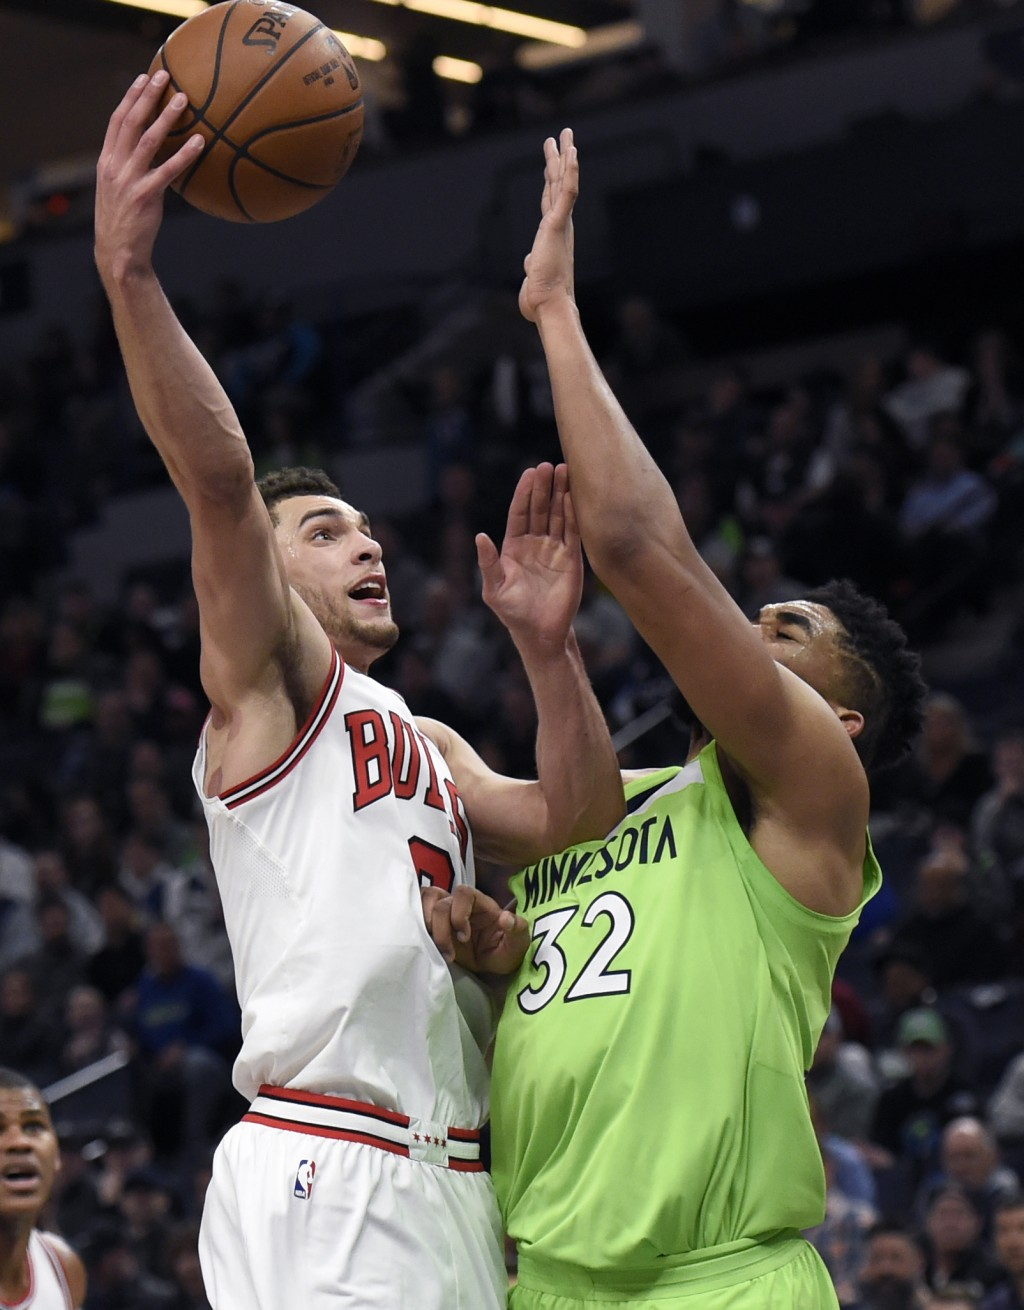 Chicago Bulls' Zach LaVine (8) shoots against Minnesota Timberwolves' Karl-Anthony Towns (32) during the fourth quarter of an NBA basketball game on S...